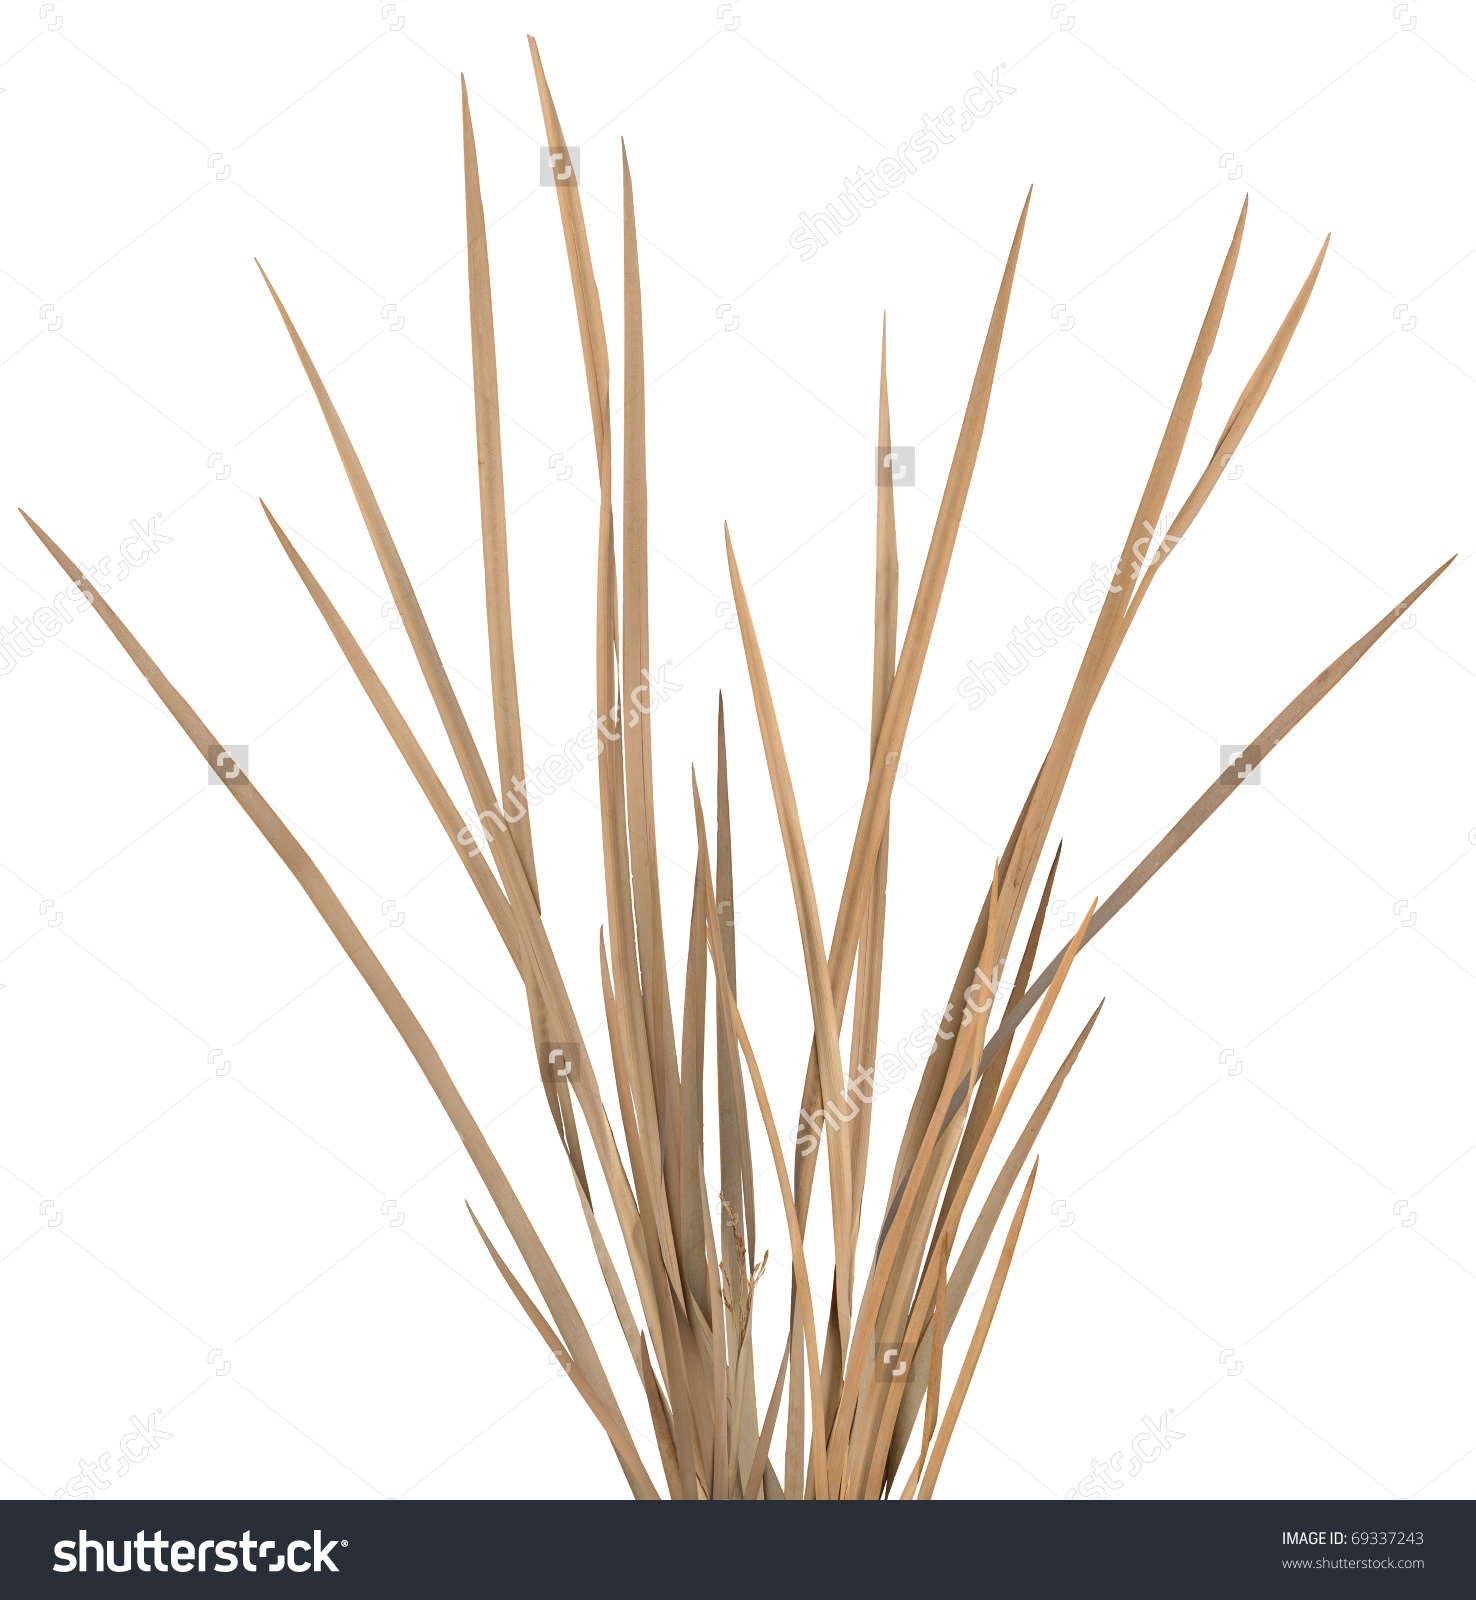 Dried Ornamental Grass Clump Very Highres Stock Photo 69337243.